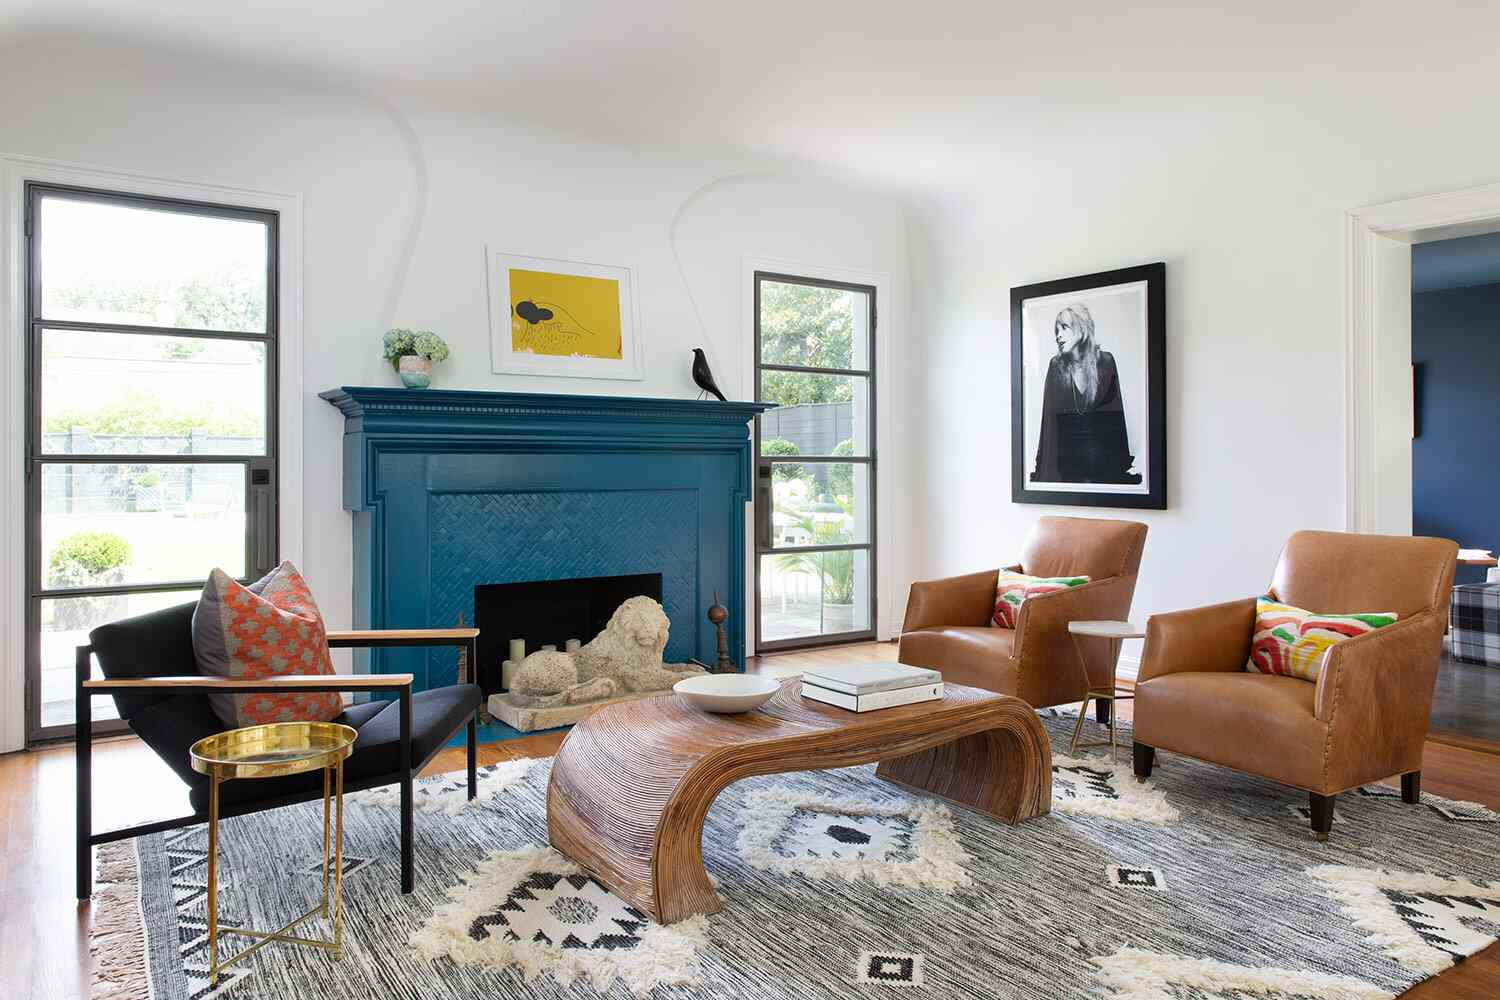 Modern eclectic living room with a bright teal fireplace